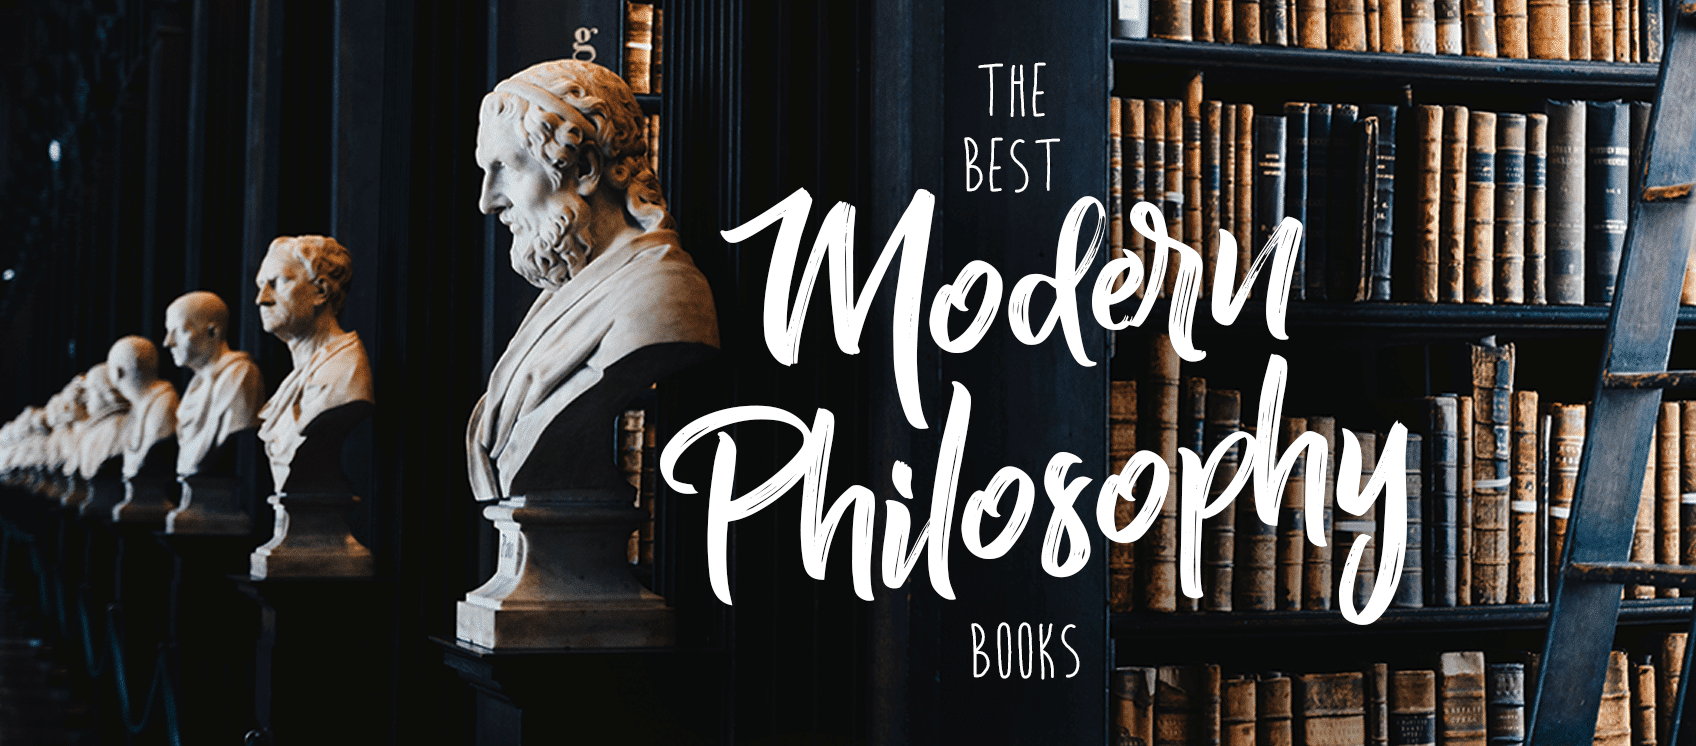 The Best Modern Philosophy Books